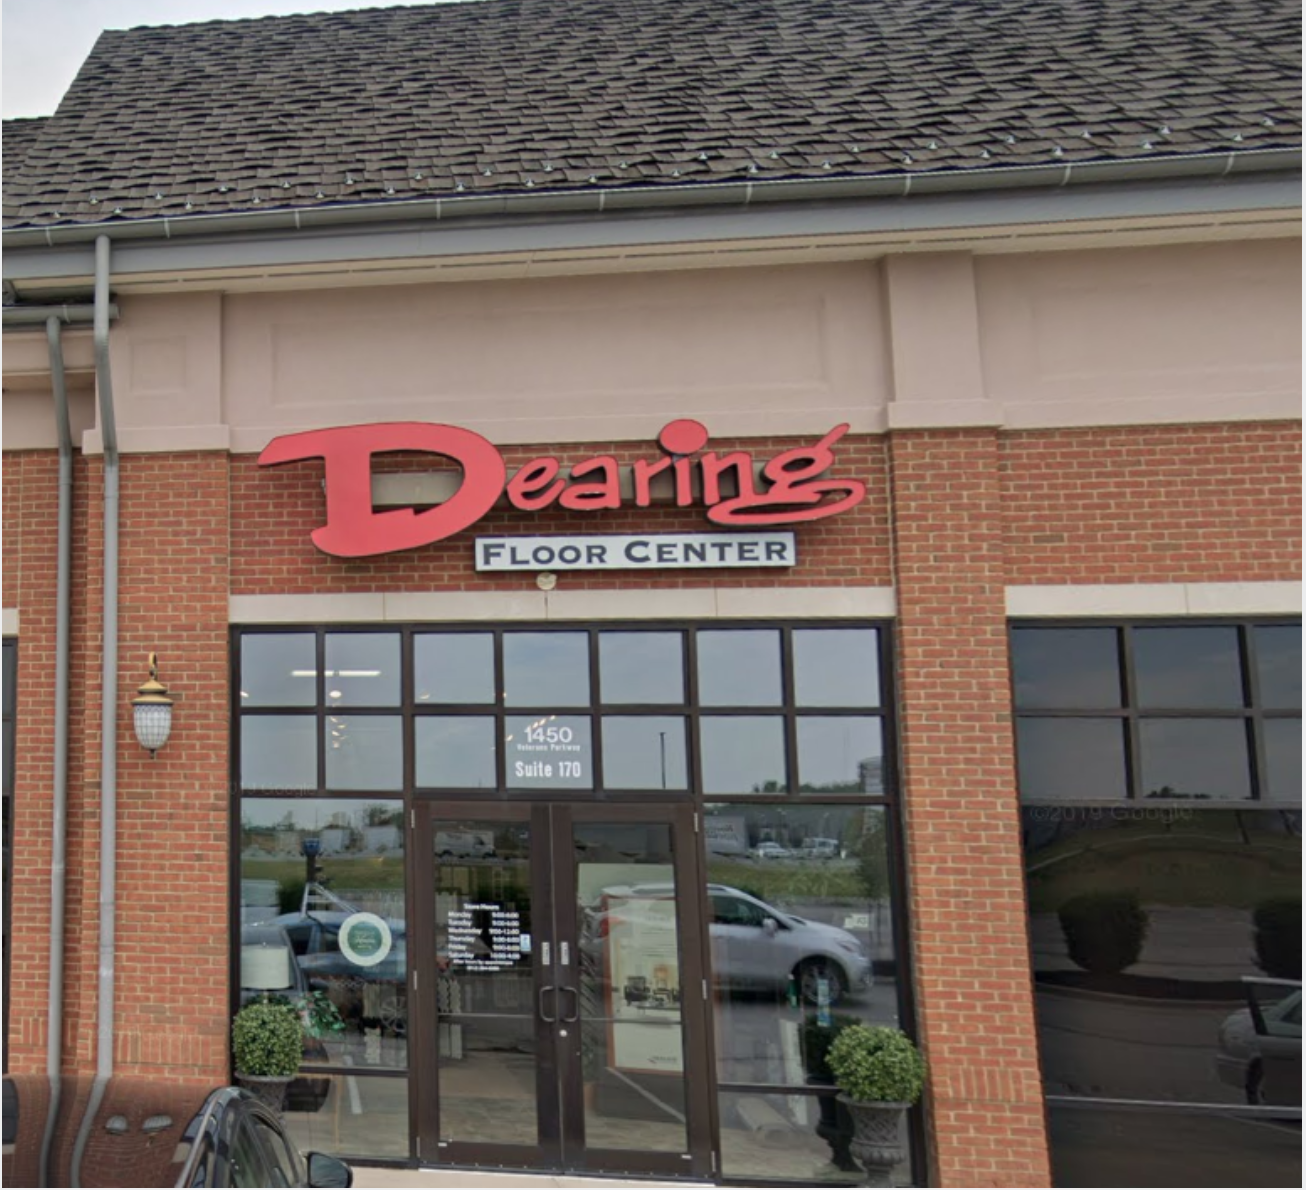 Dearing Flooring Center - 1450 Veterans Pkwy, Jeffersonville, IN 47130